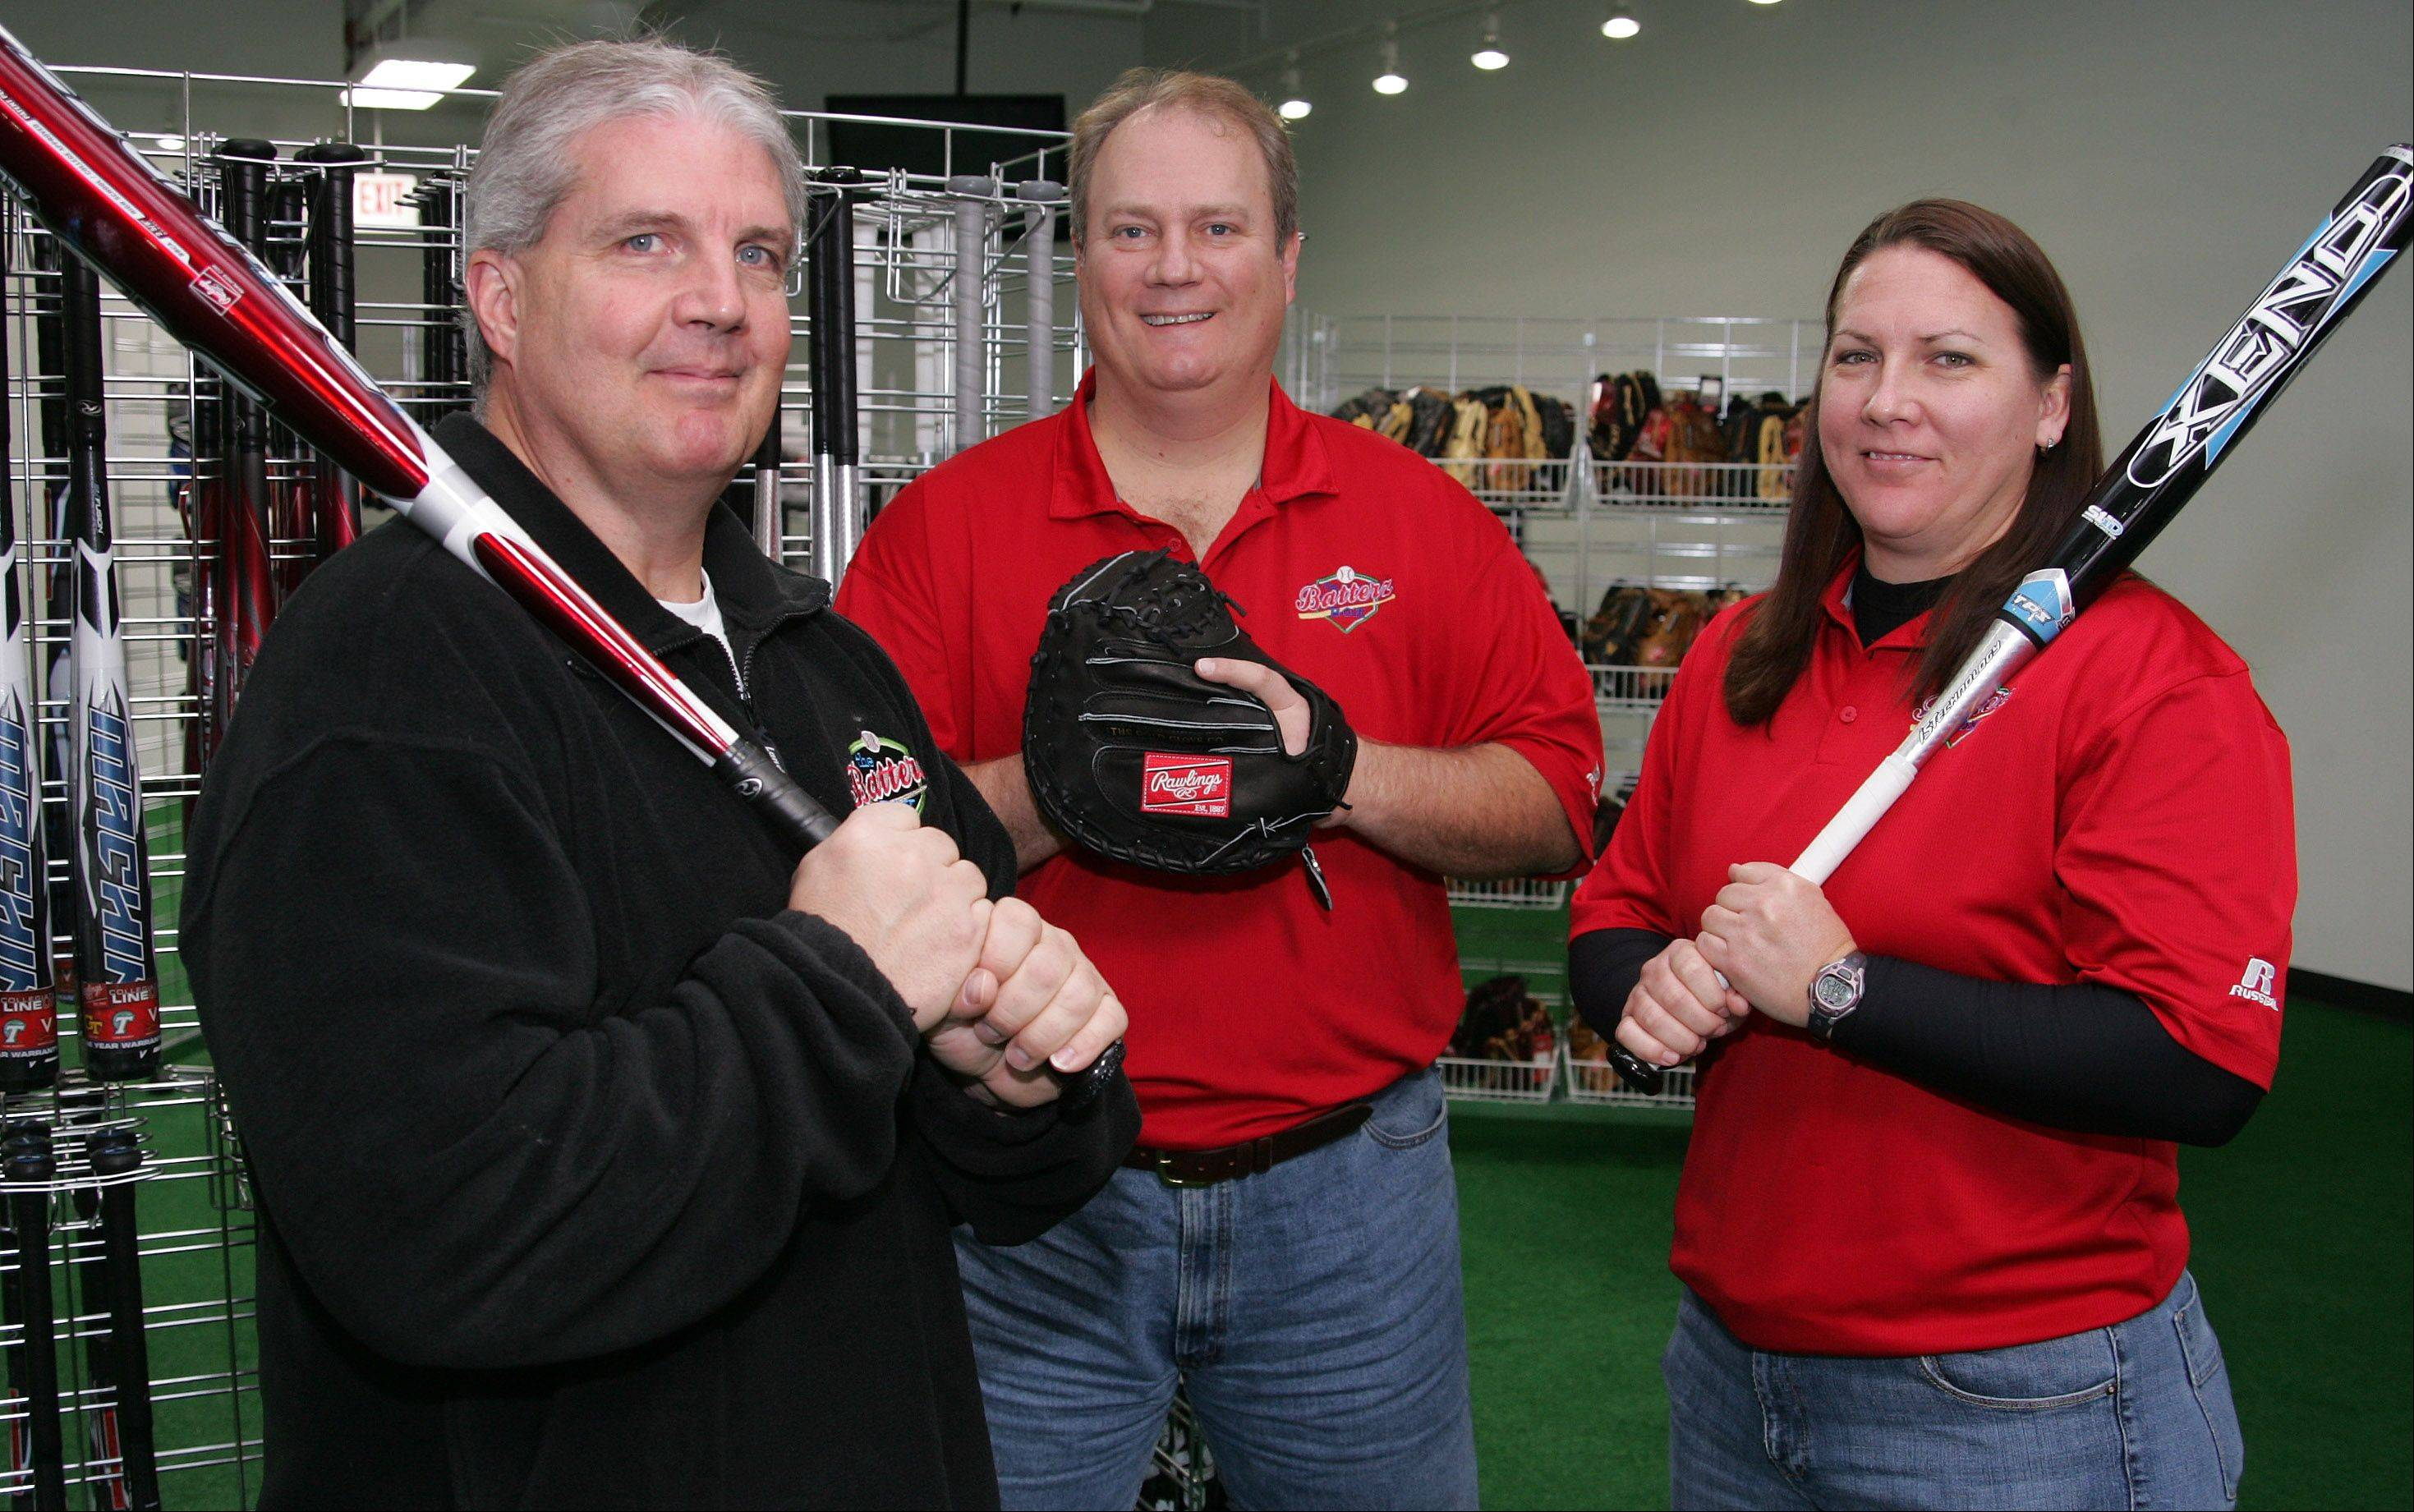 Rob Earhart, team sales manager; Mike Dutler, president, owner; and Michelle Oswald, director of softball, operate a new business in Libertyville, The Batterz Box.